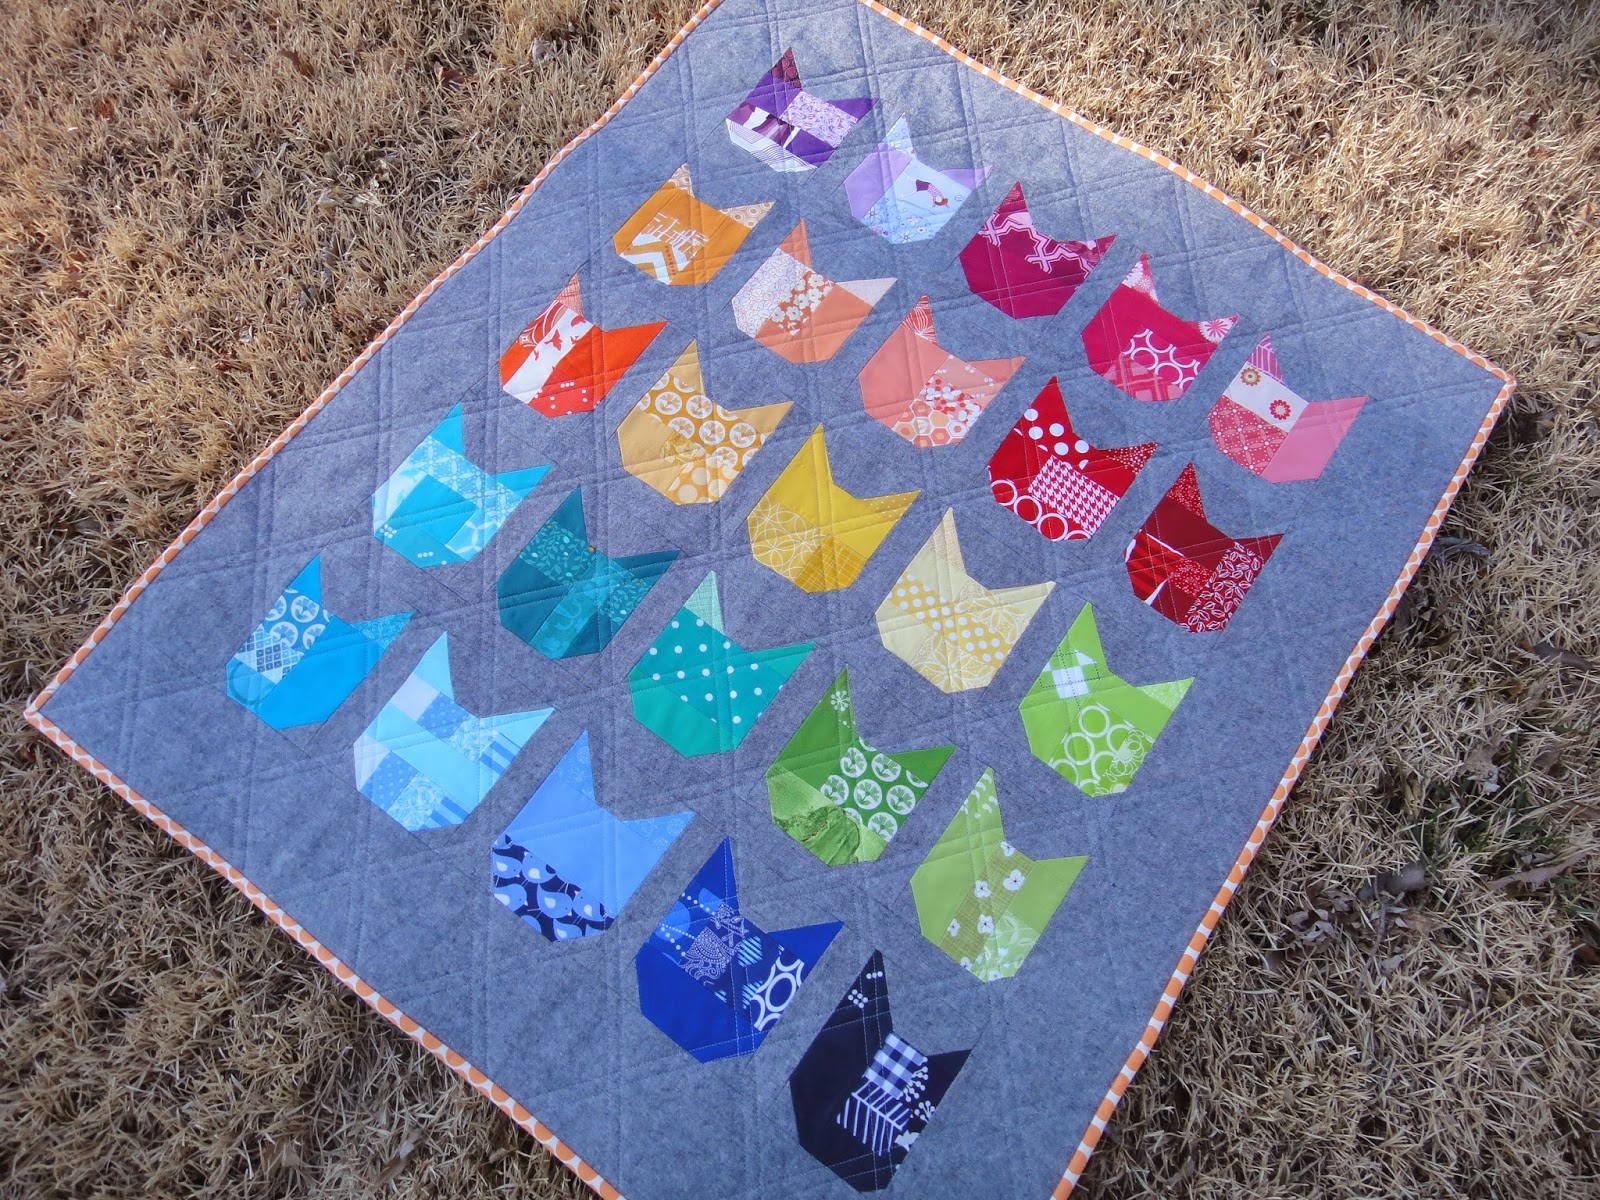 http://ablueskykindoflife.blogspot.com/2014/03/catty-kitty-quilt-finished.html